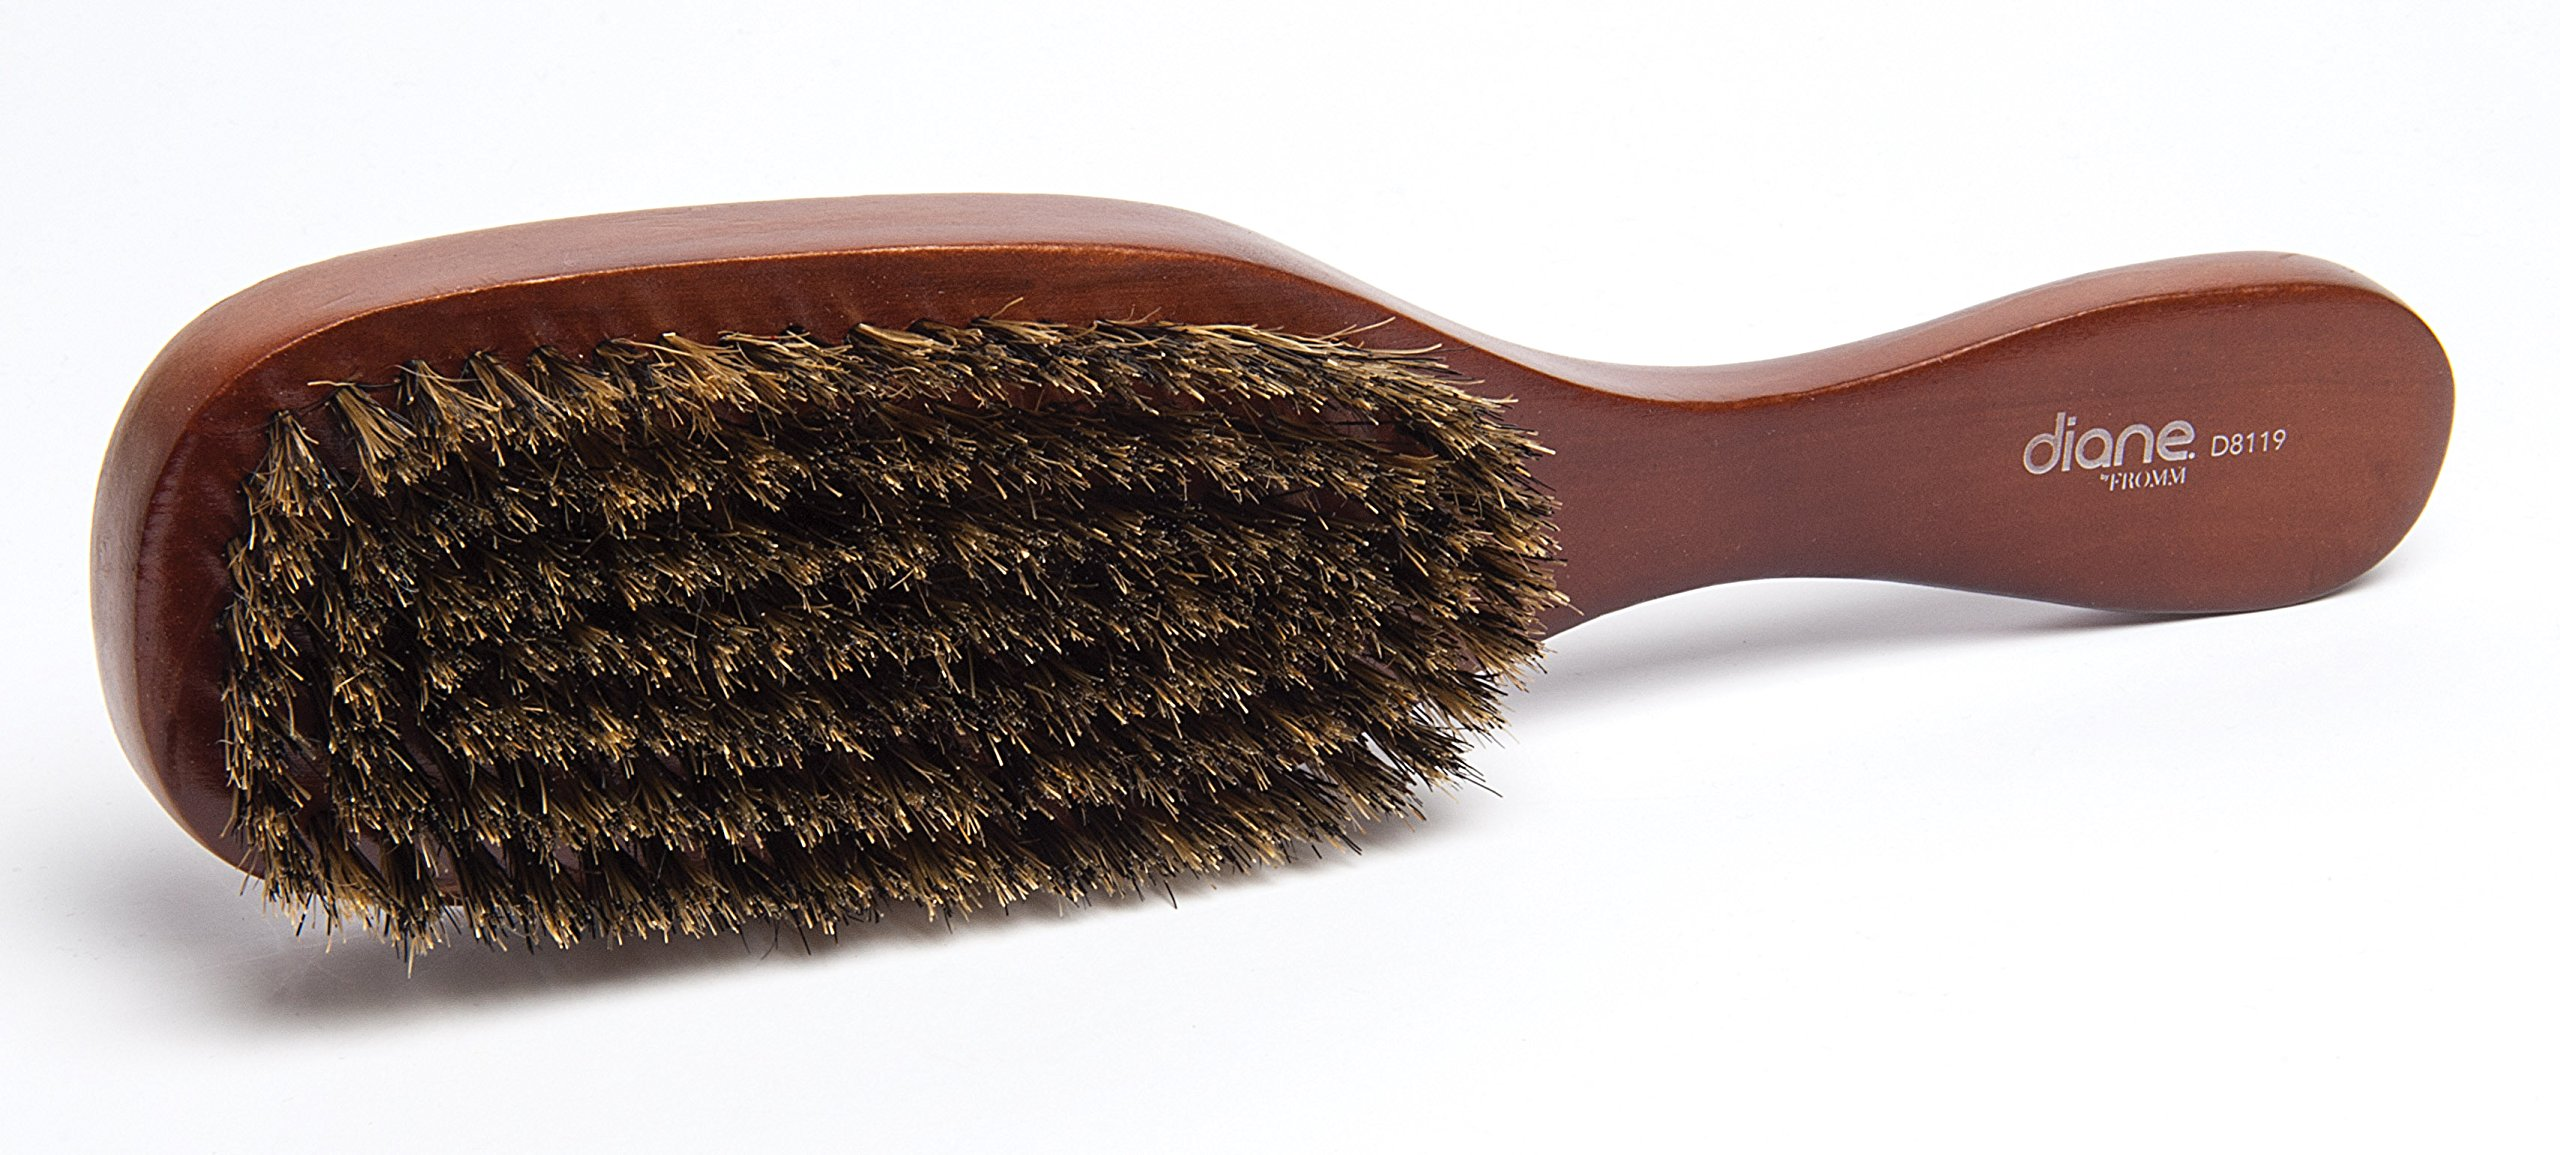 diane palm brush extra